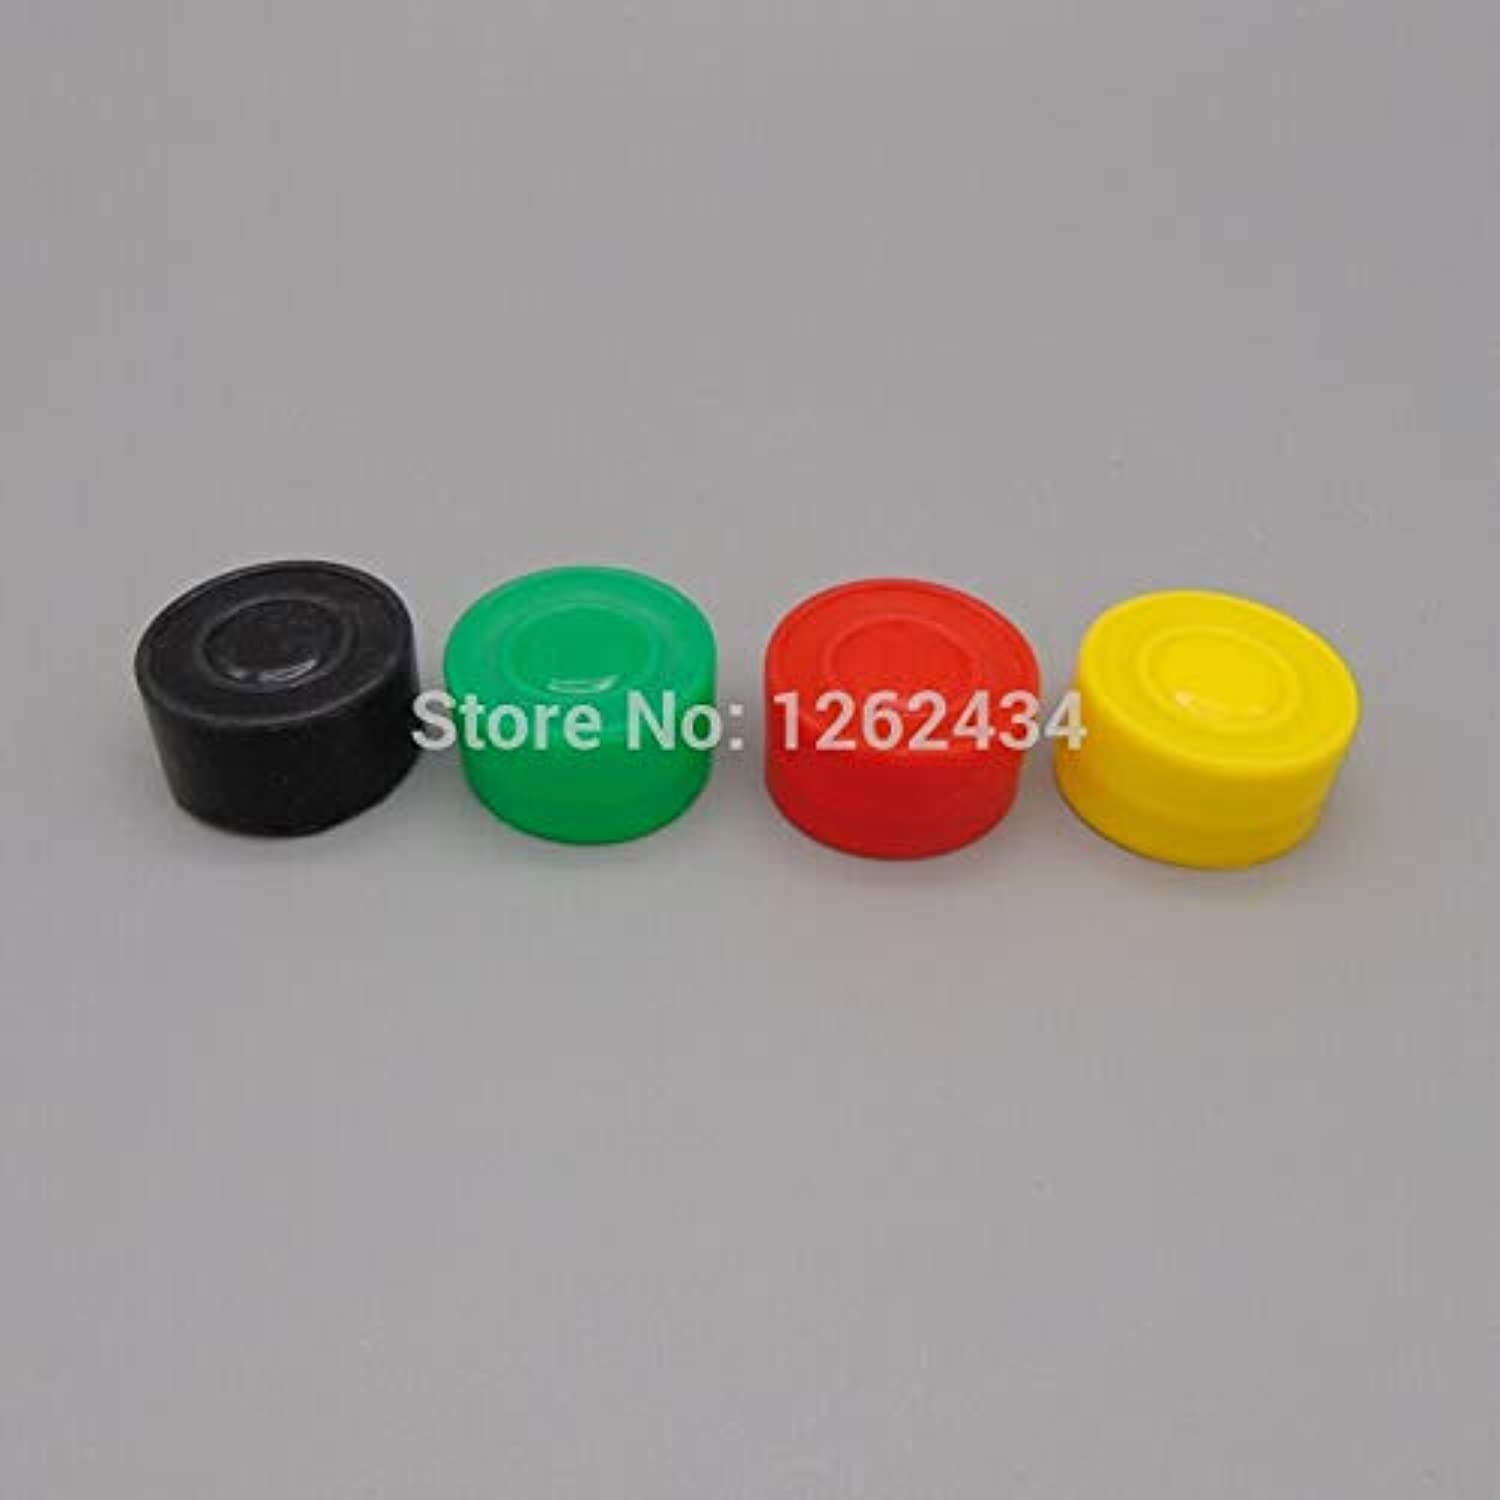 22 25 Waterproof Button Cap Note The color You Need Place an Order Black red Green Huang